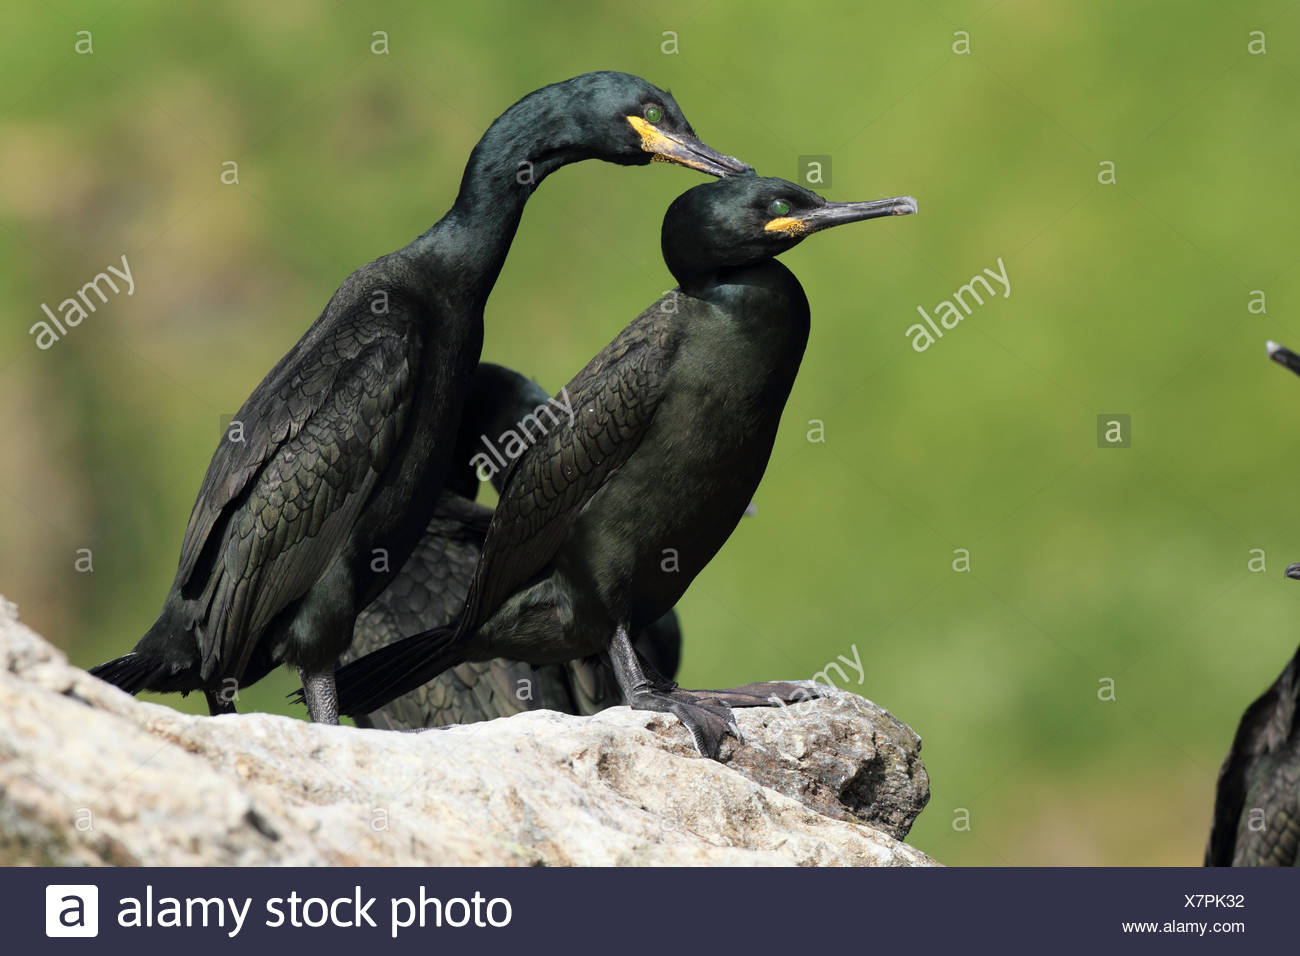 Shags  in Norway - Stock Image